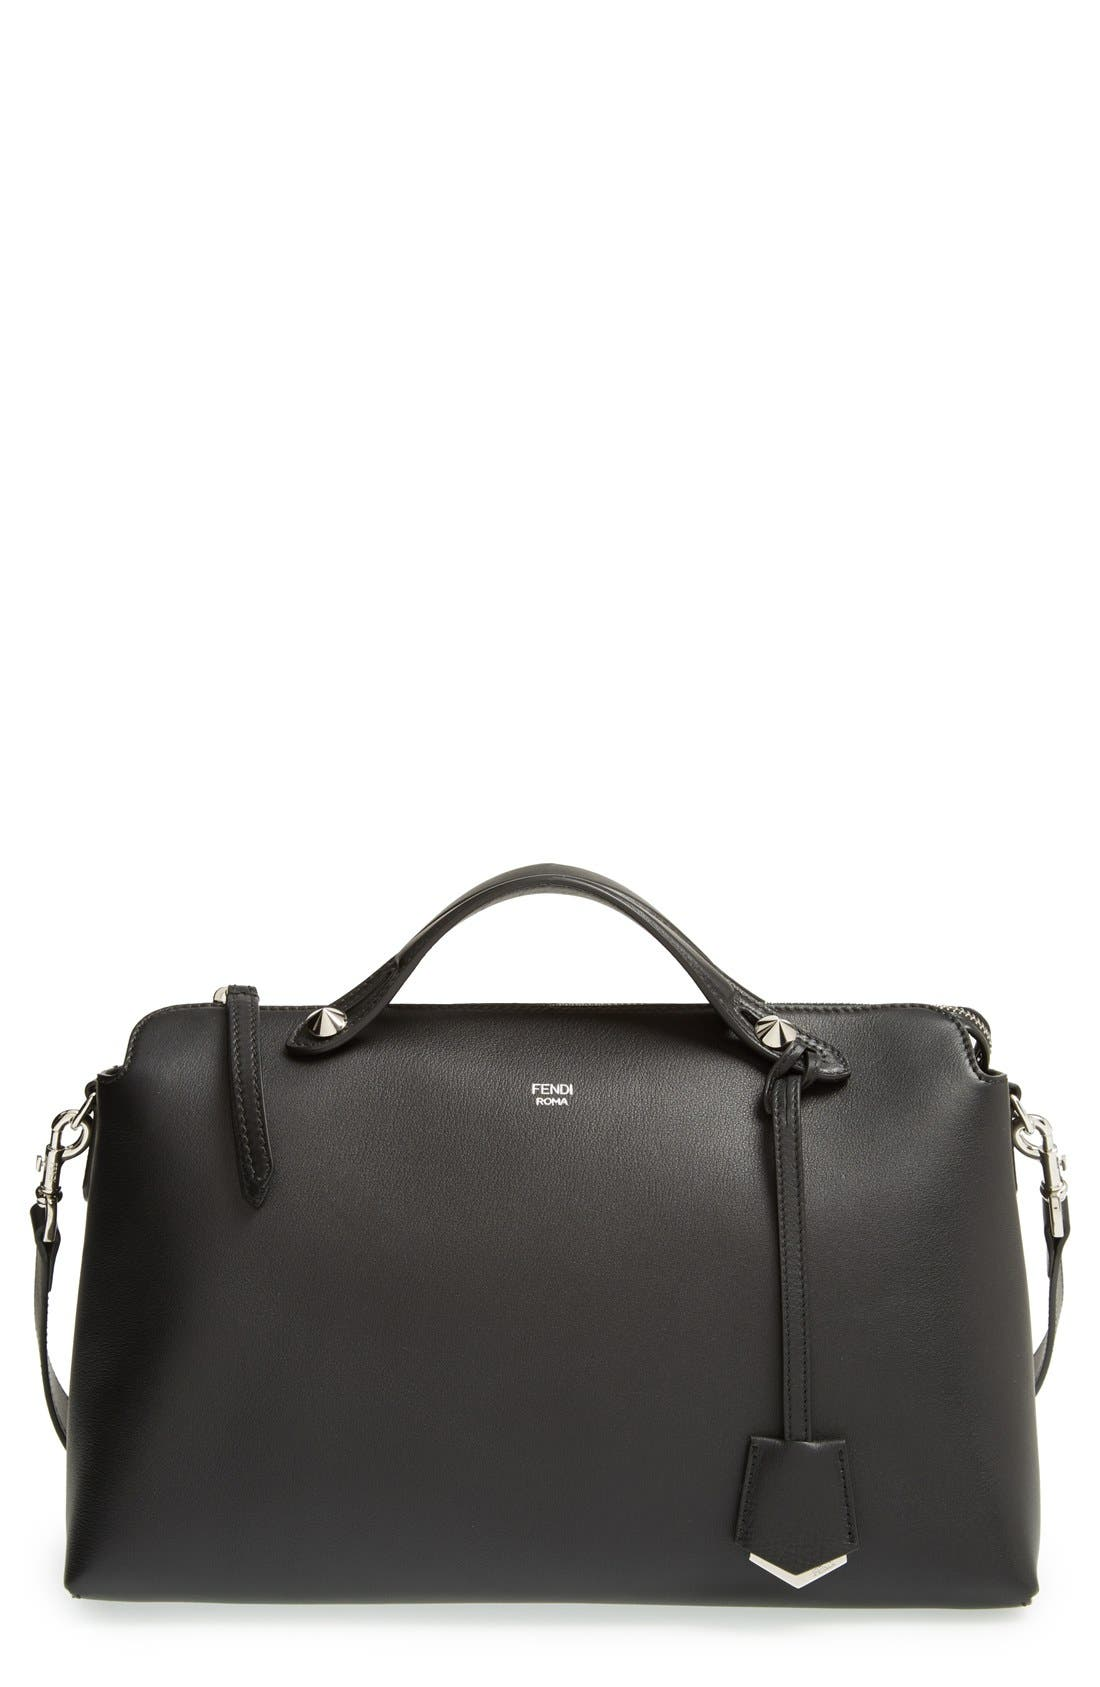 Alternate Image 1 Selected - Fendi Large by the Way Leather Shoulder Bag